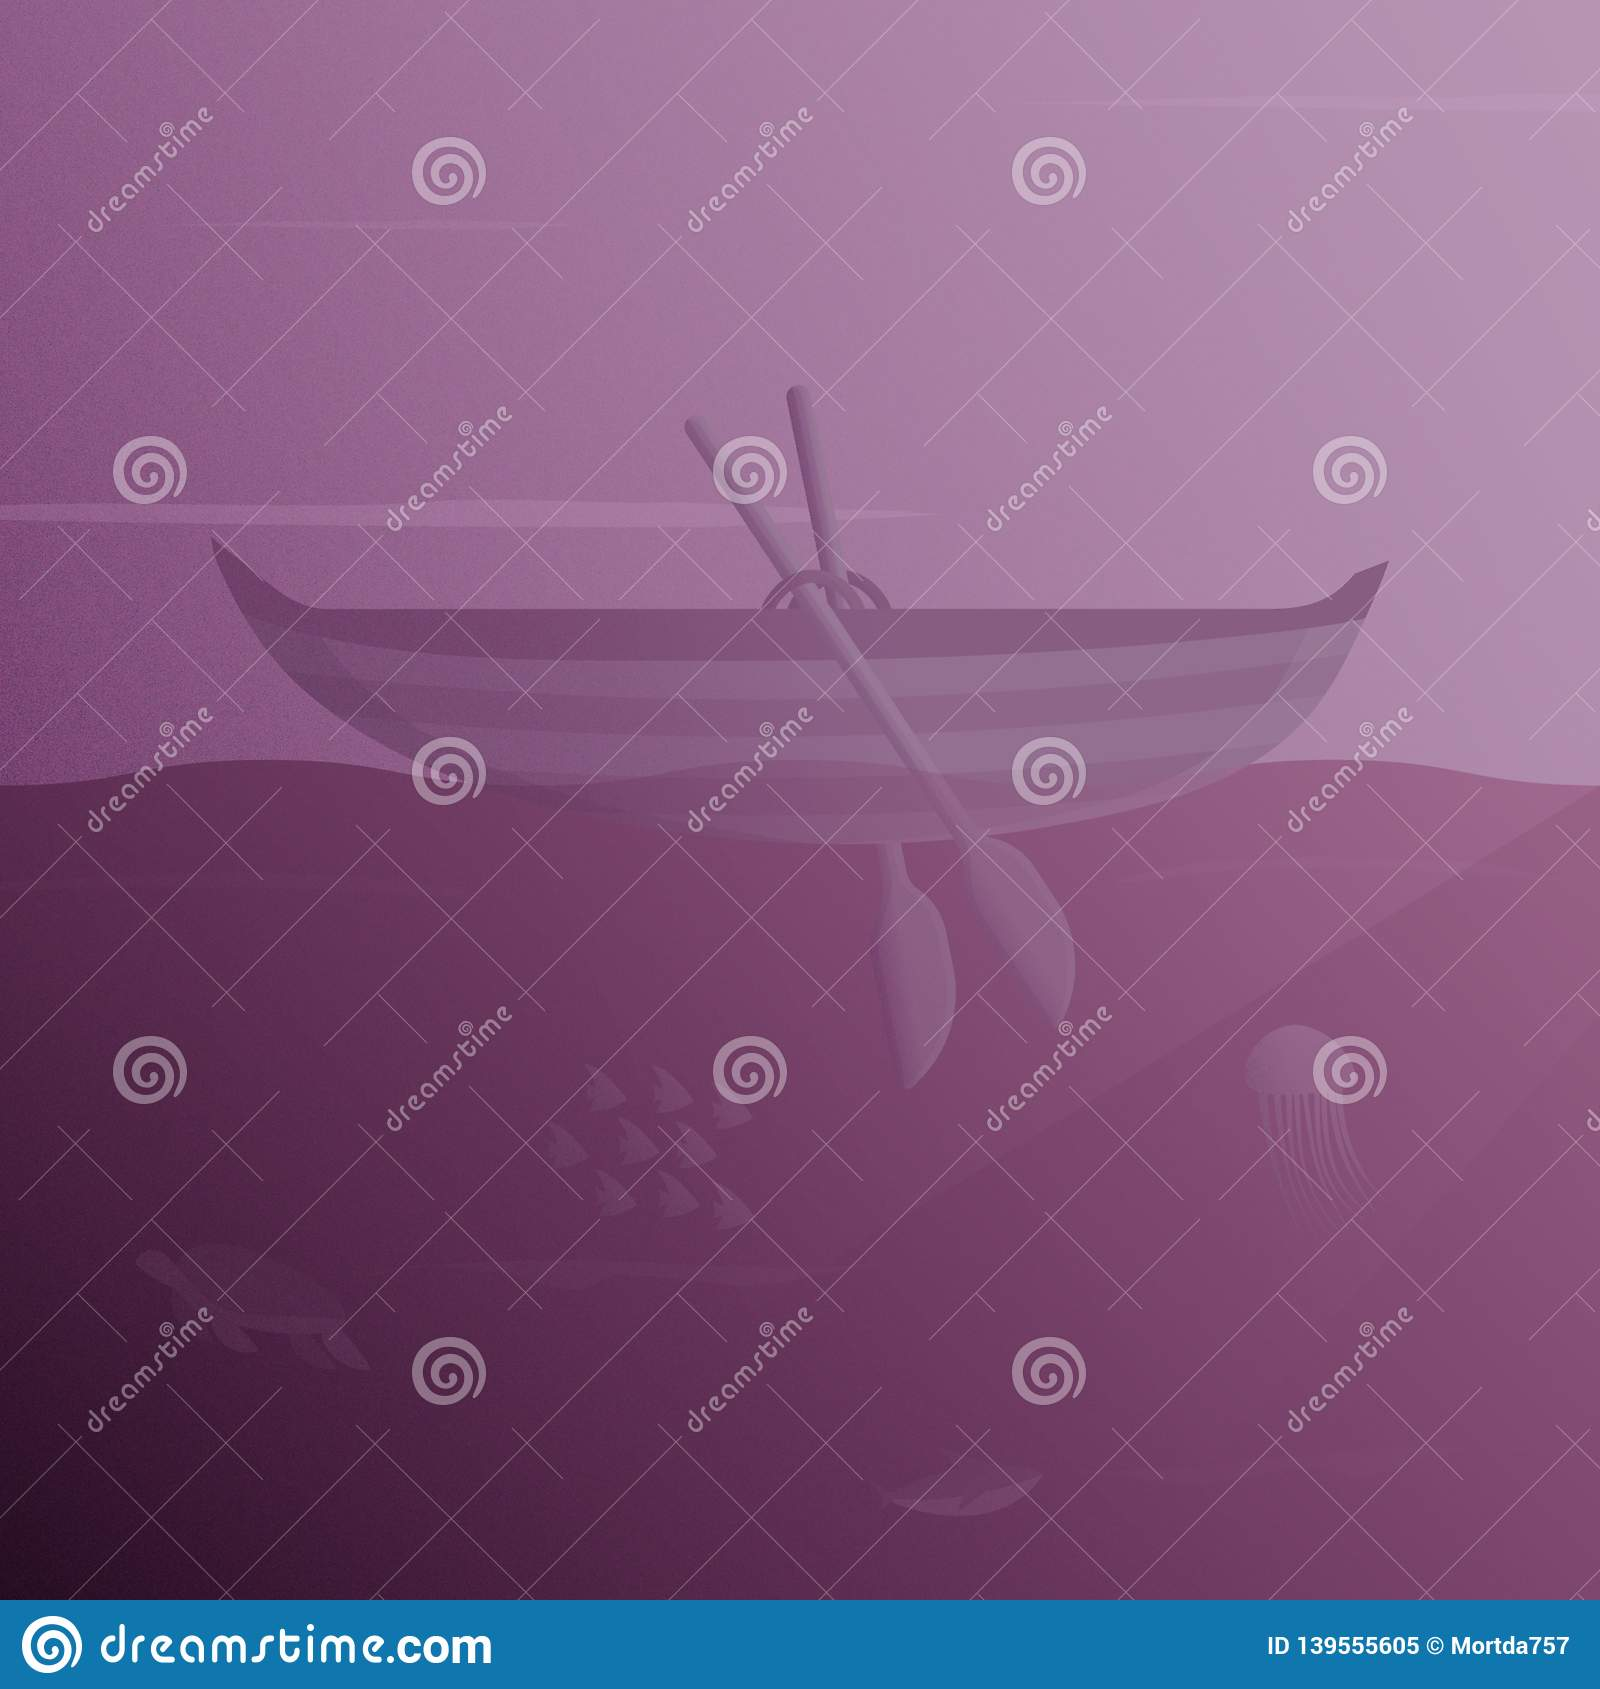 Illustration Of a Floating Boat With Underwater View and Sea Creatures